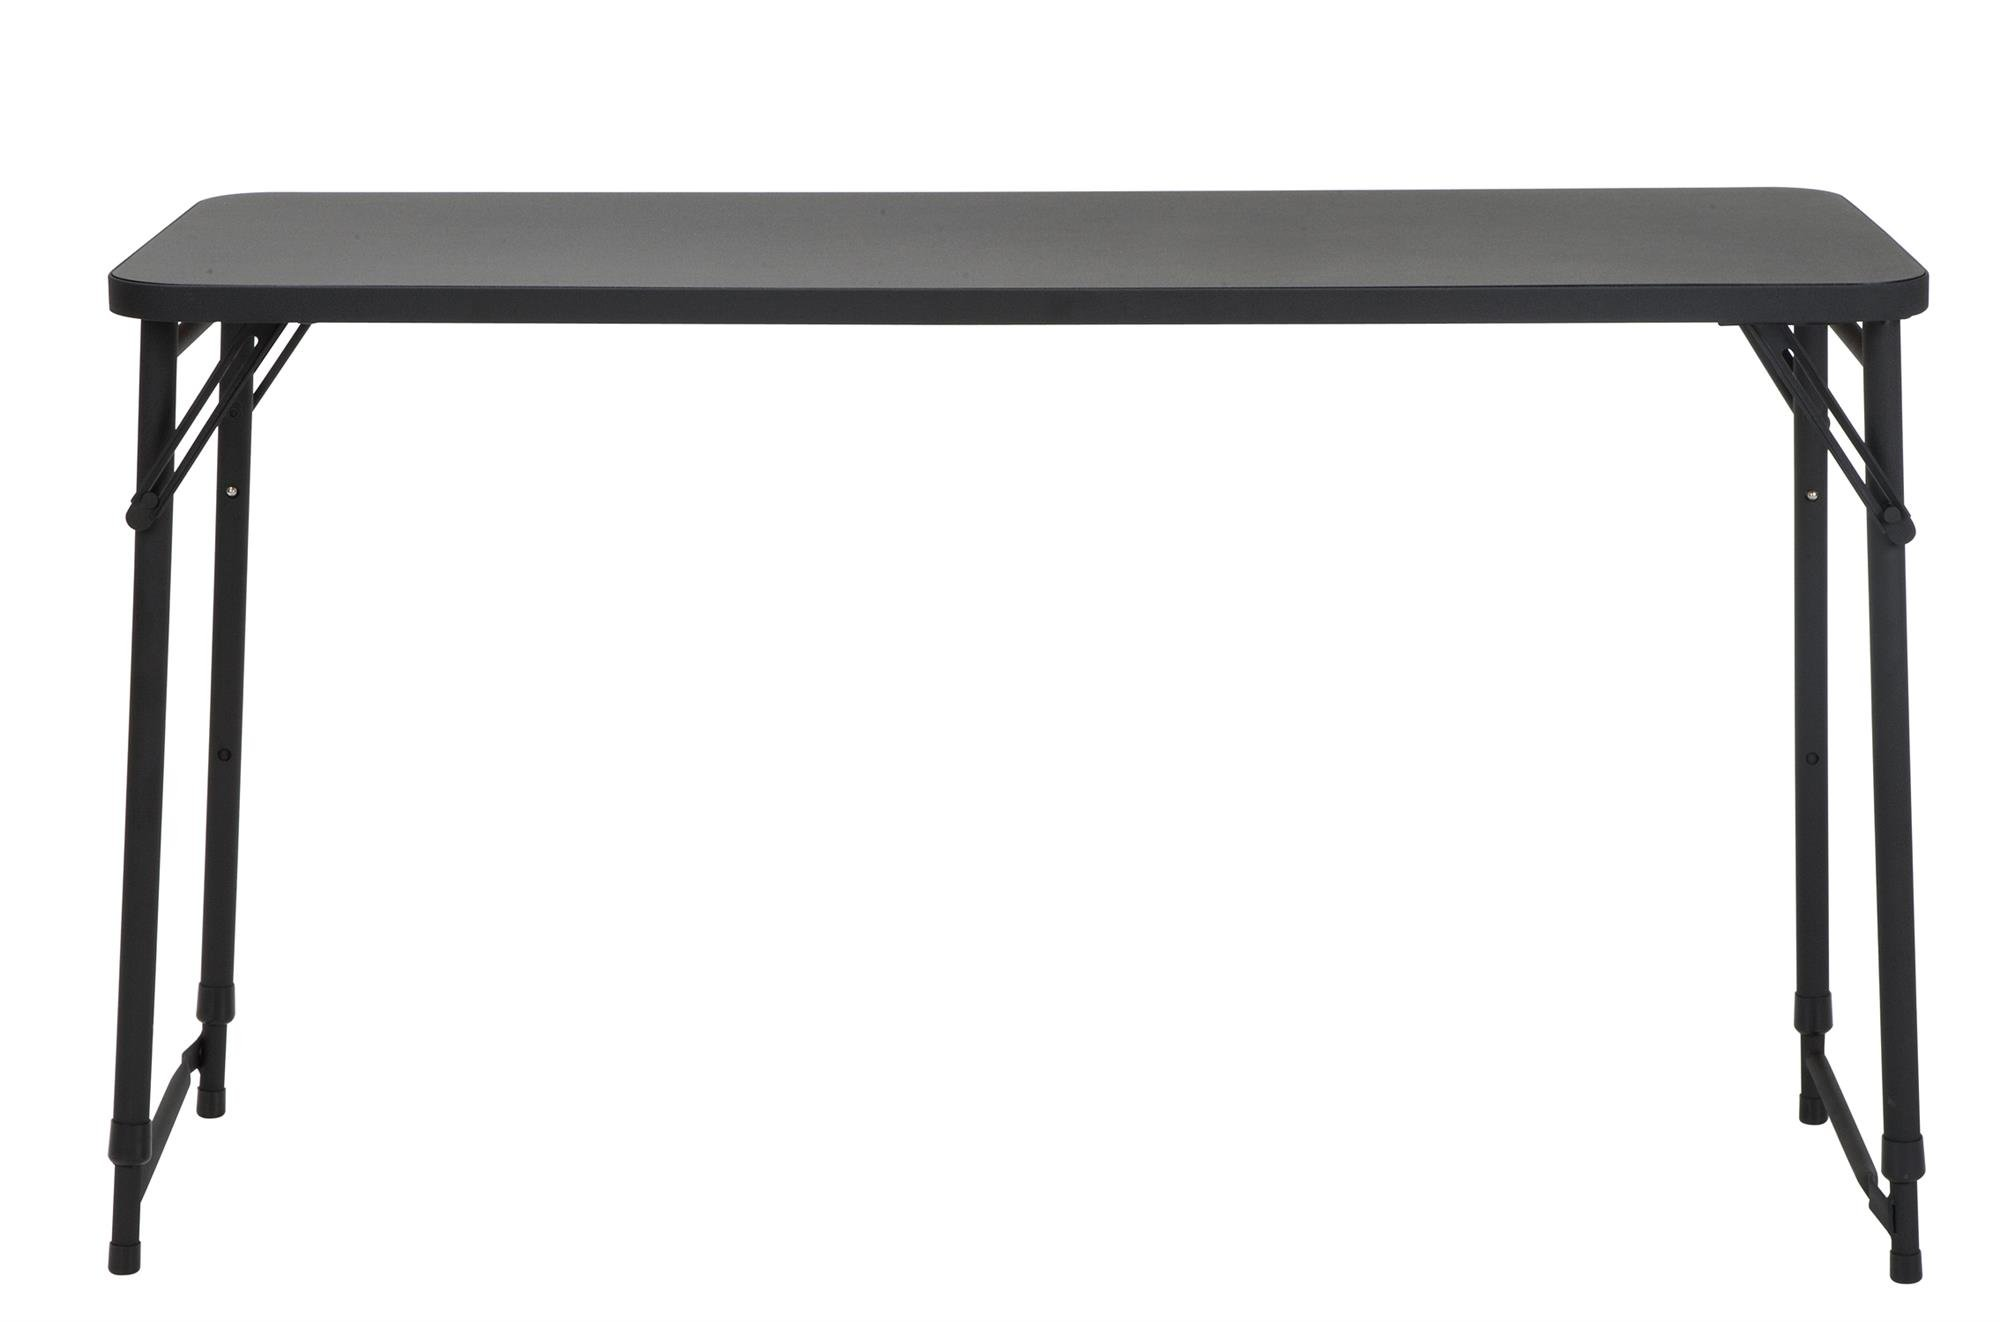 """CoscoProducts COSCO 20"""" x 48"""" Adjustable Height PVC Top Table, Black"""